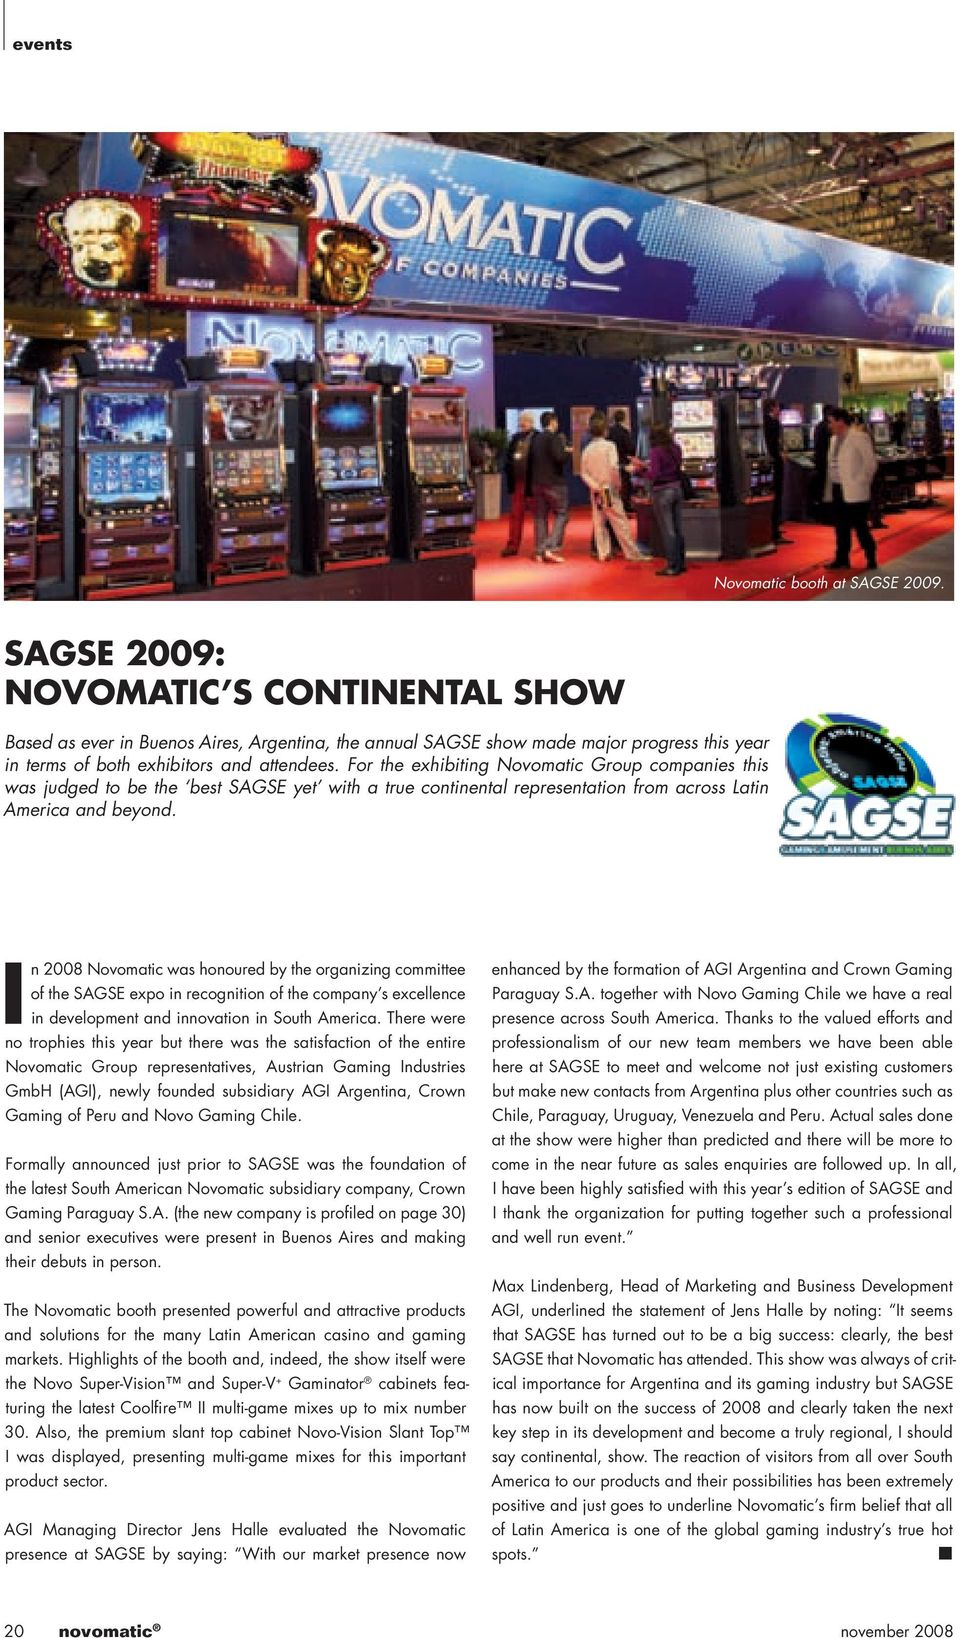 For the exhibiting Novomatic Group companies this was judged to be the best SAGSE yet with a true continental representation from across Latin America and beyond.